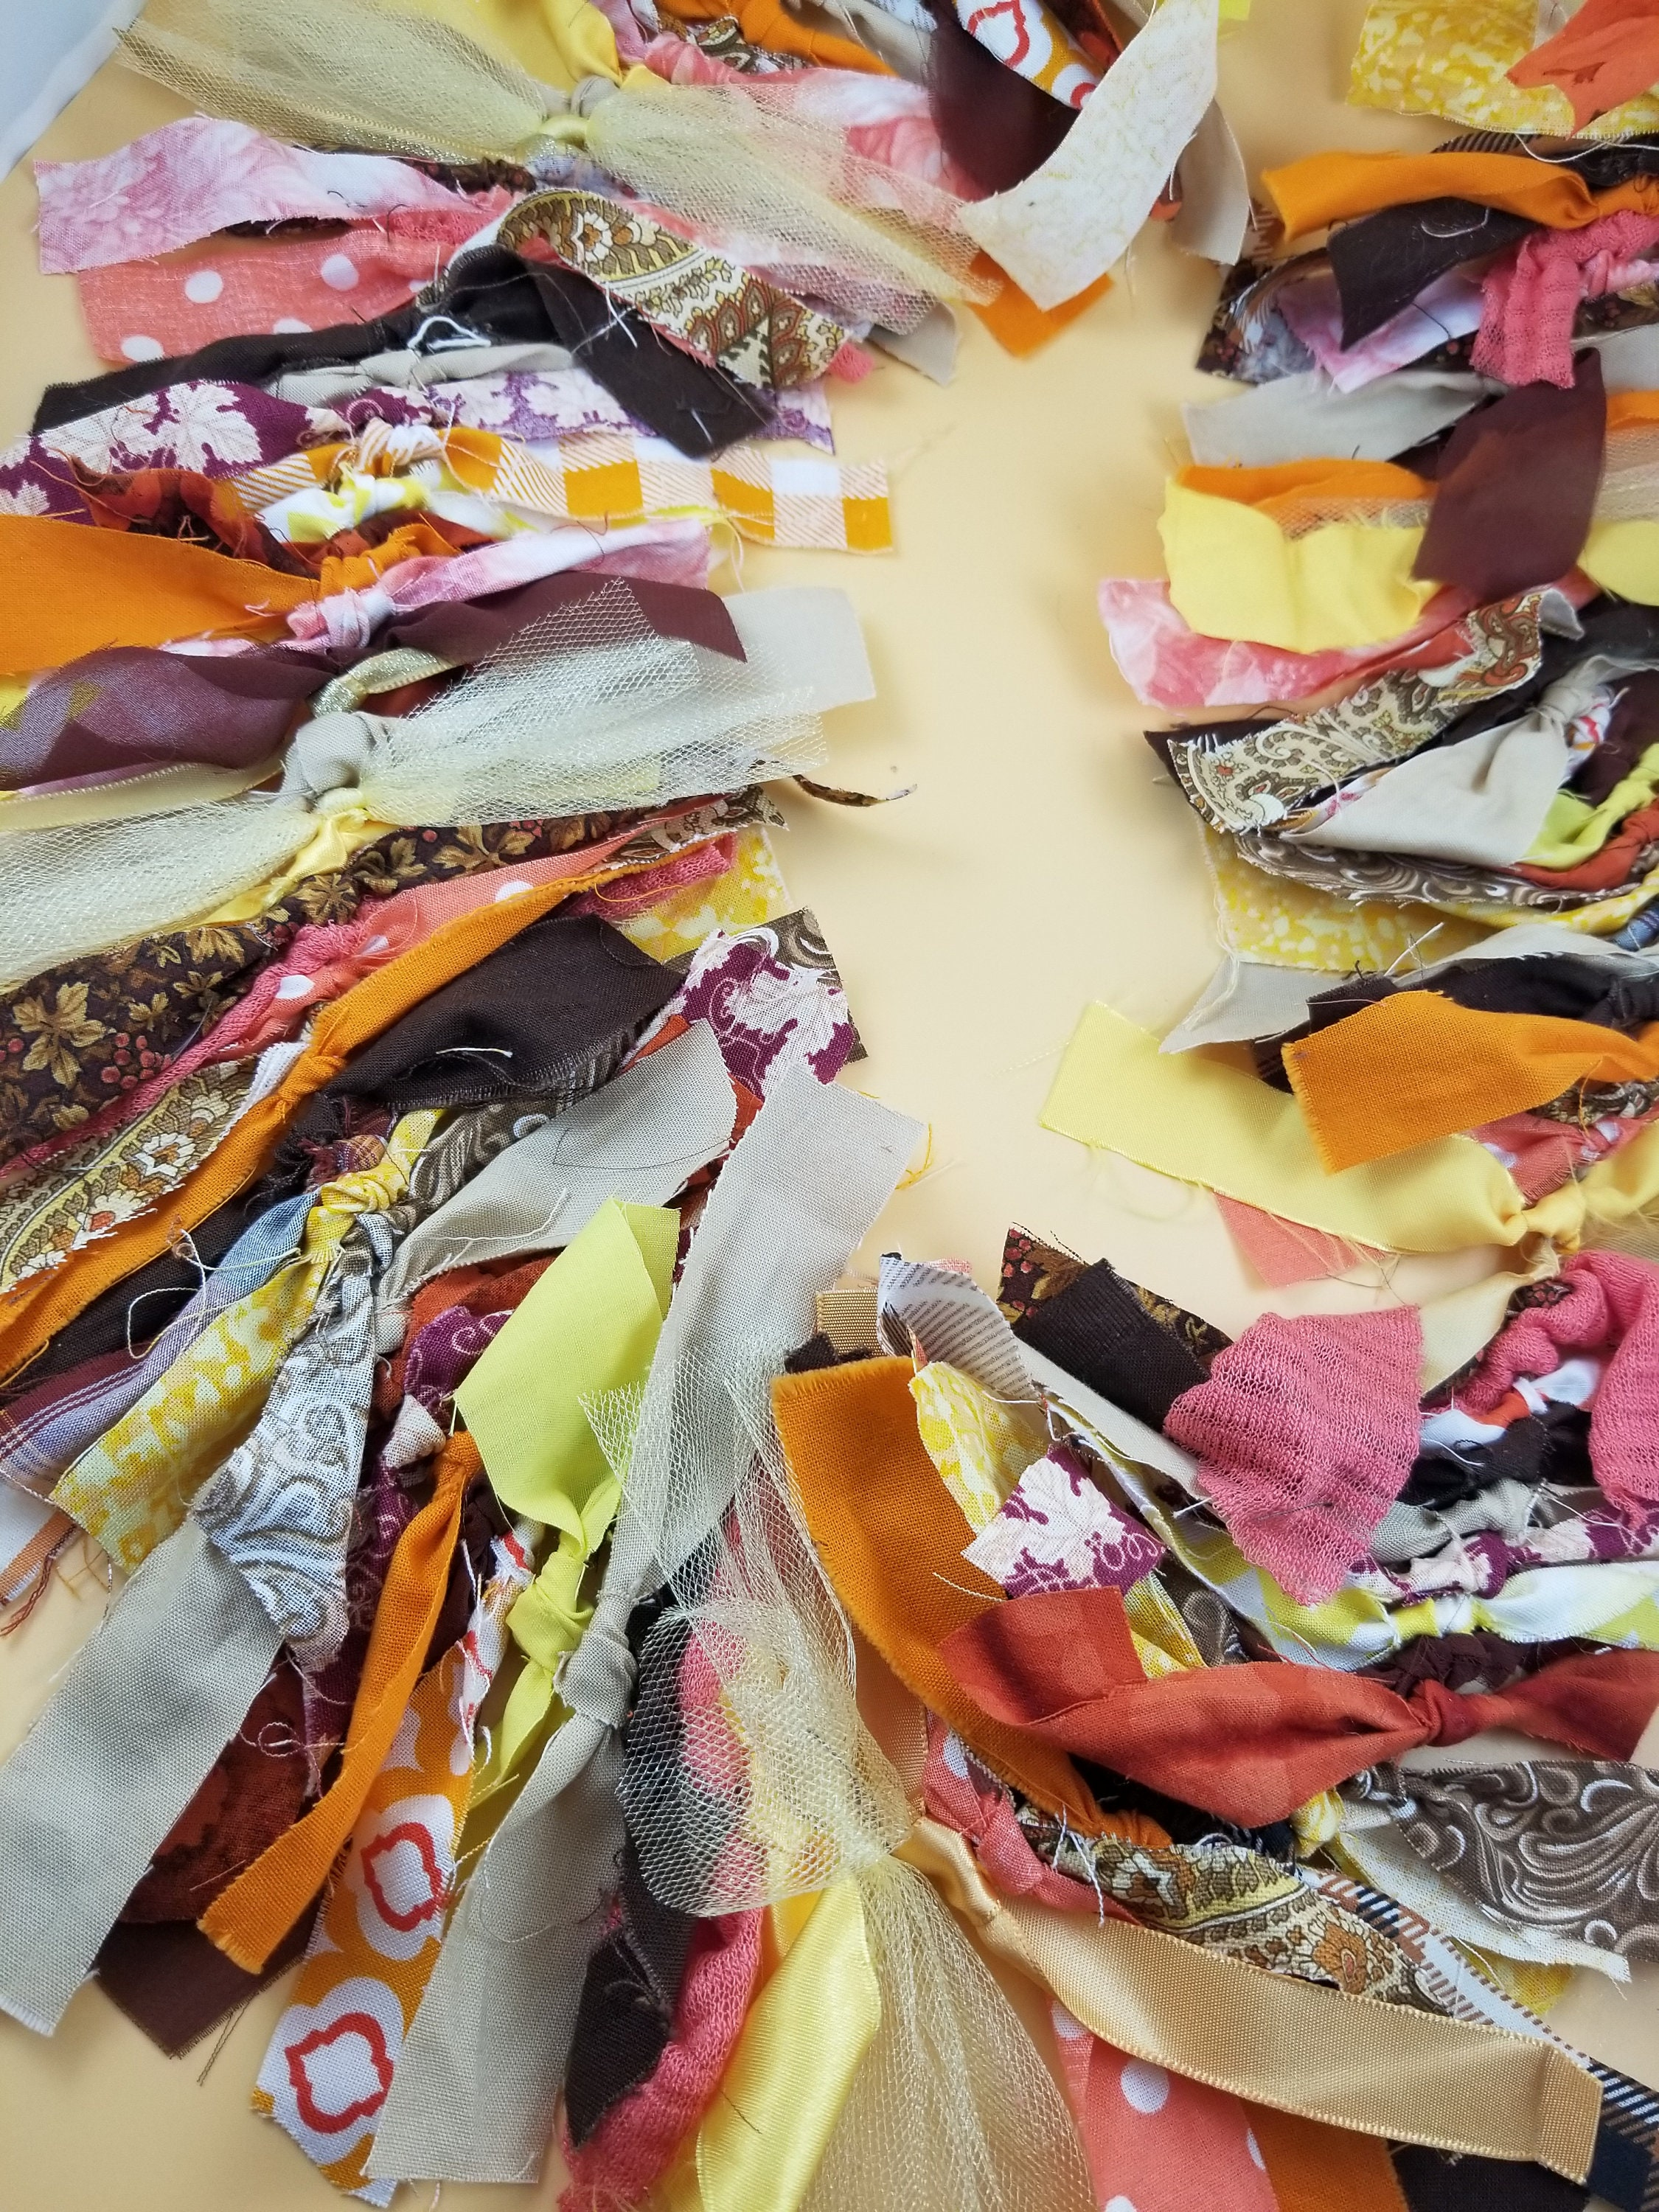 New Rustic Fall Fabric Garland Colorful Rustic Fall Wedding Garland 5 Ft Rustic Fall Shower Garland Bridal Shower Flower Garland